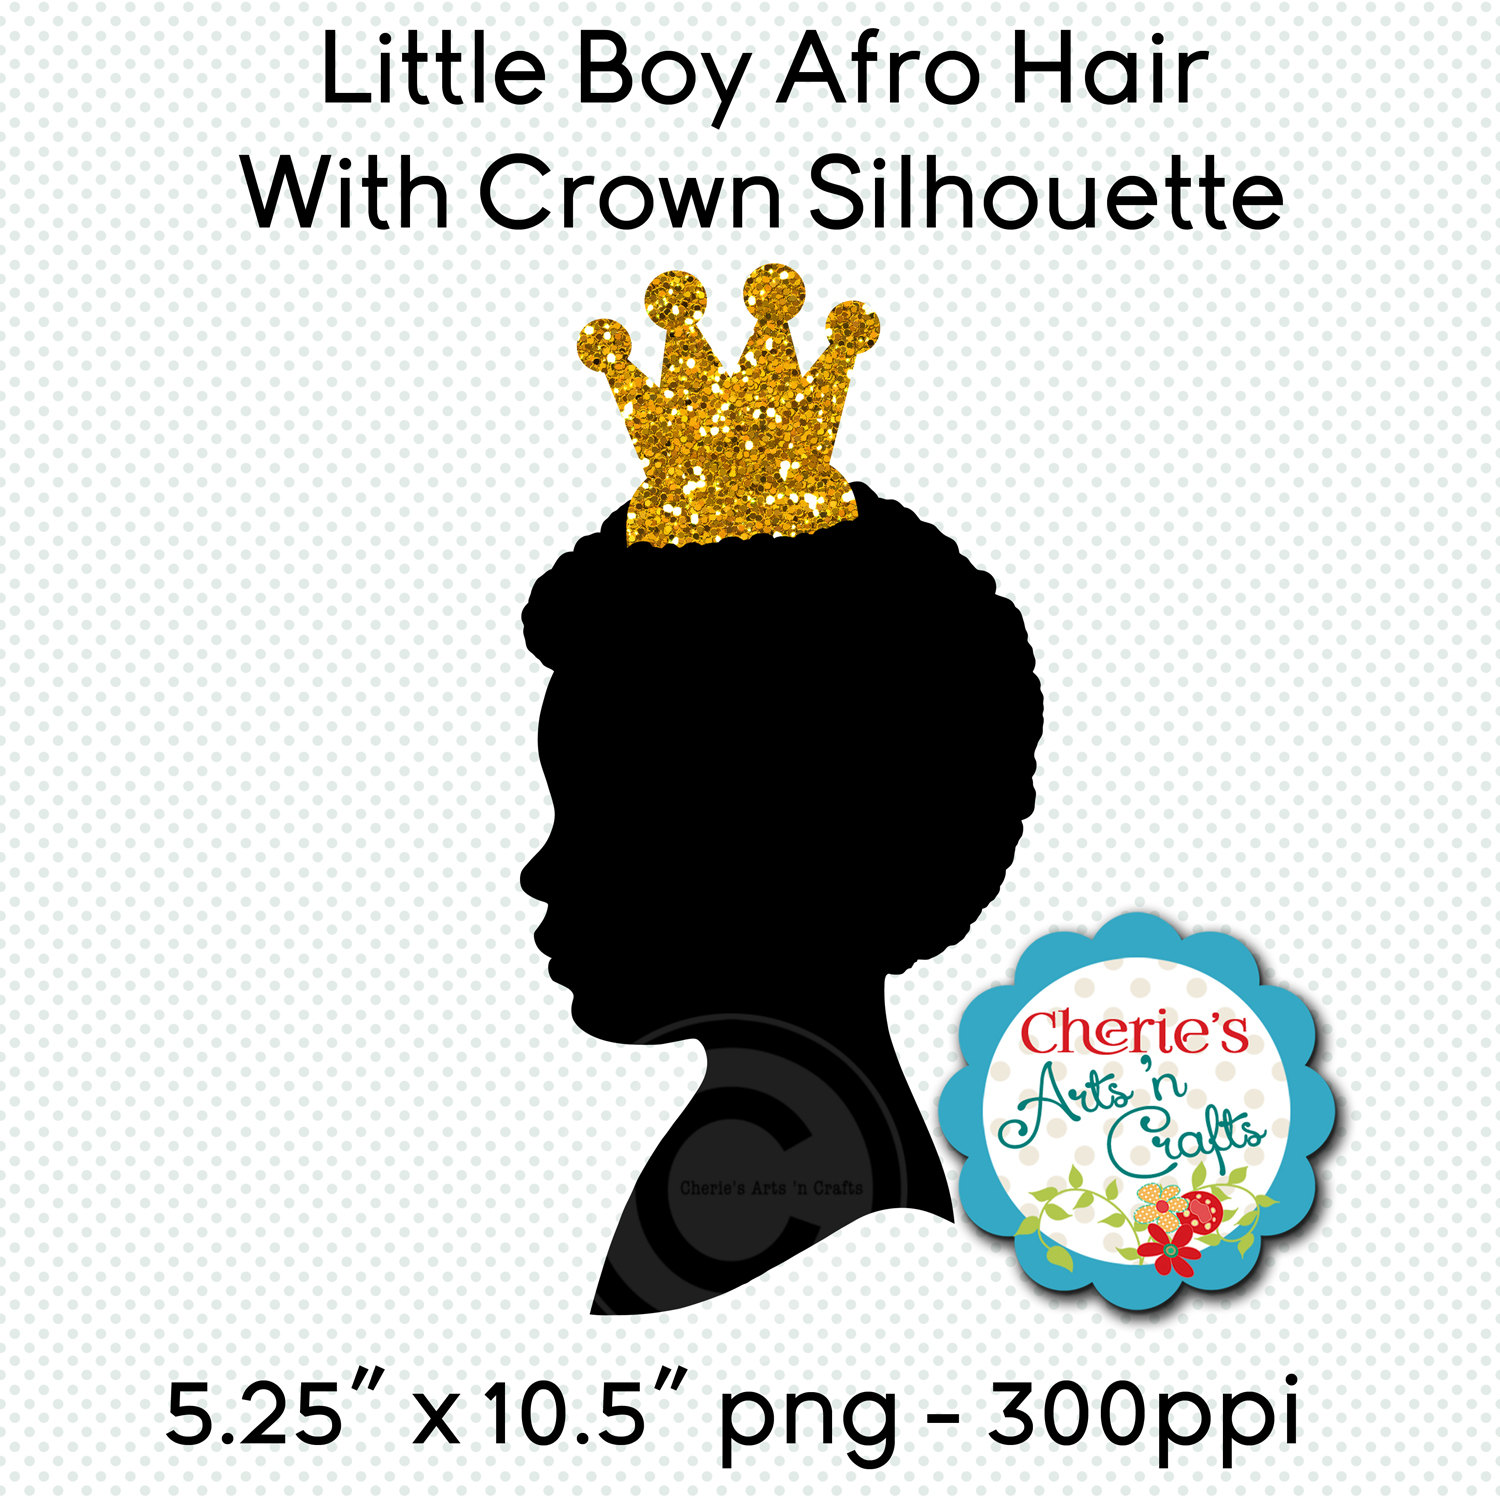 Afro clipart crown silhouette. Little boy hairstyle african